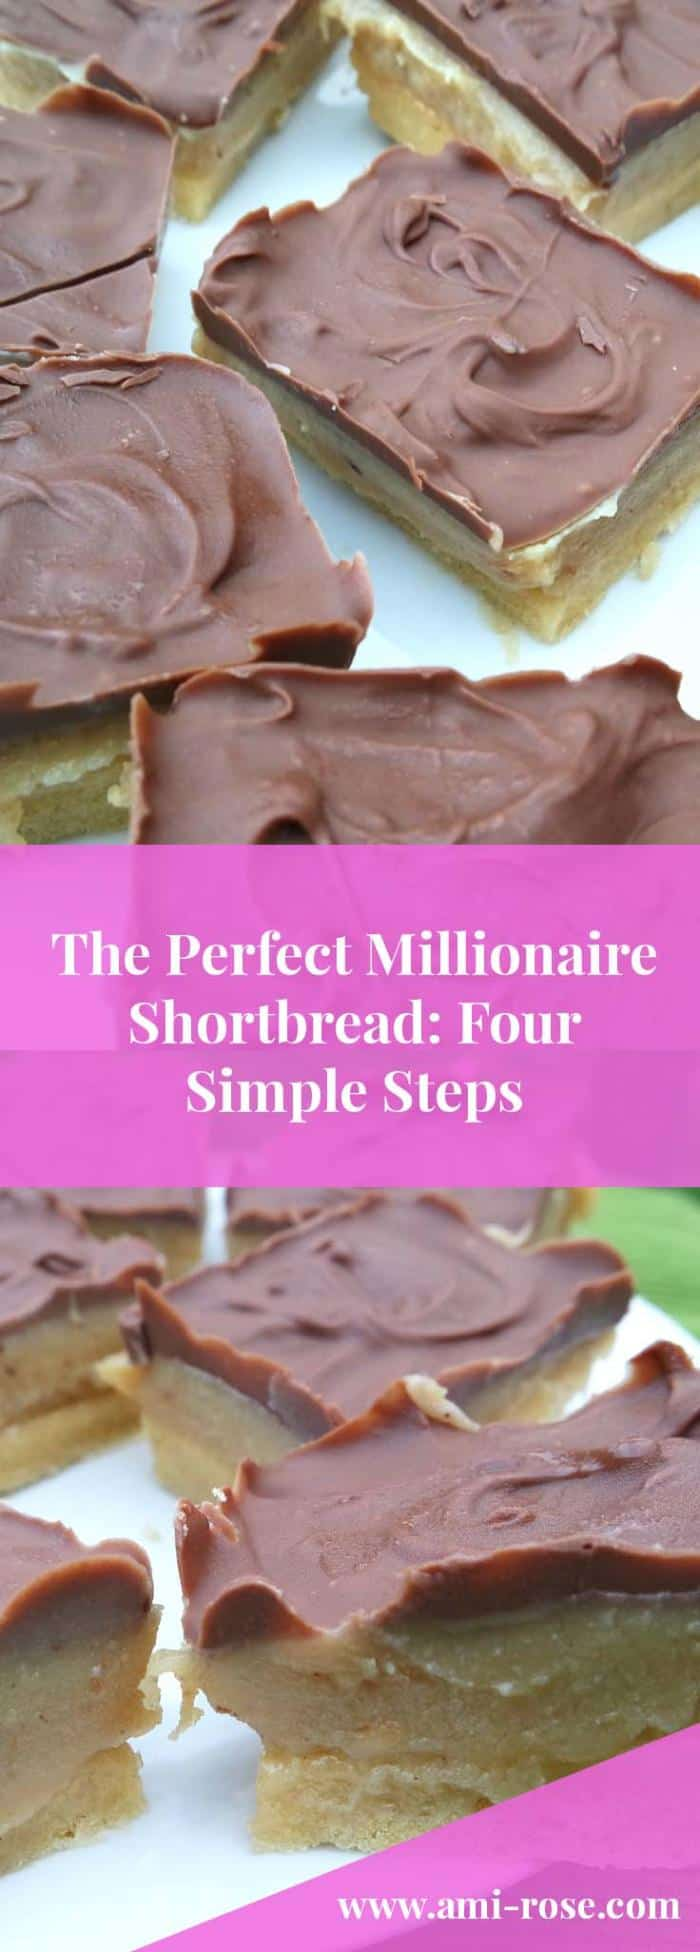 The Perfect Millionaire Shortbread in just 4 Simple Steps. A household favourite!